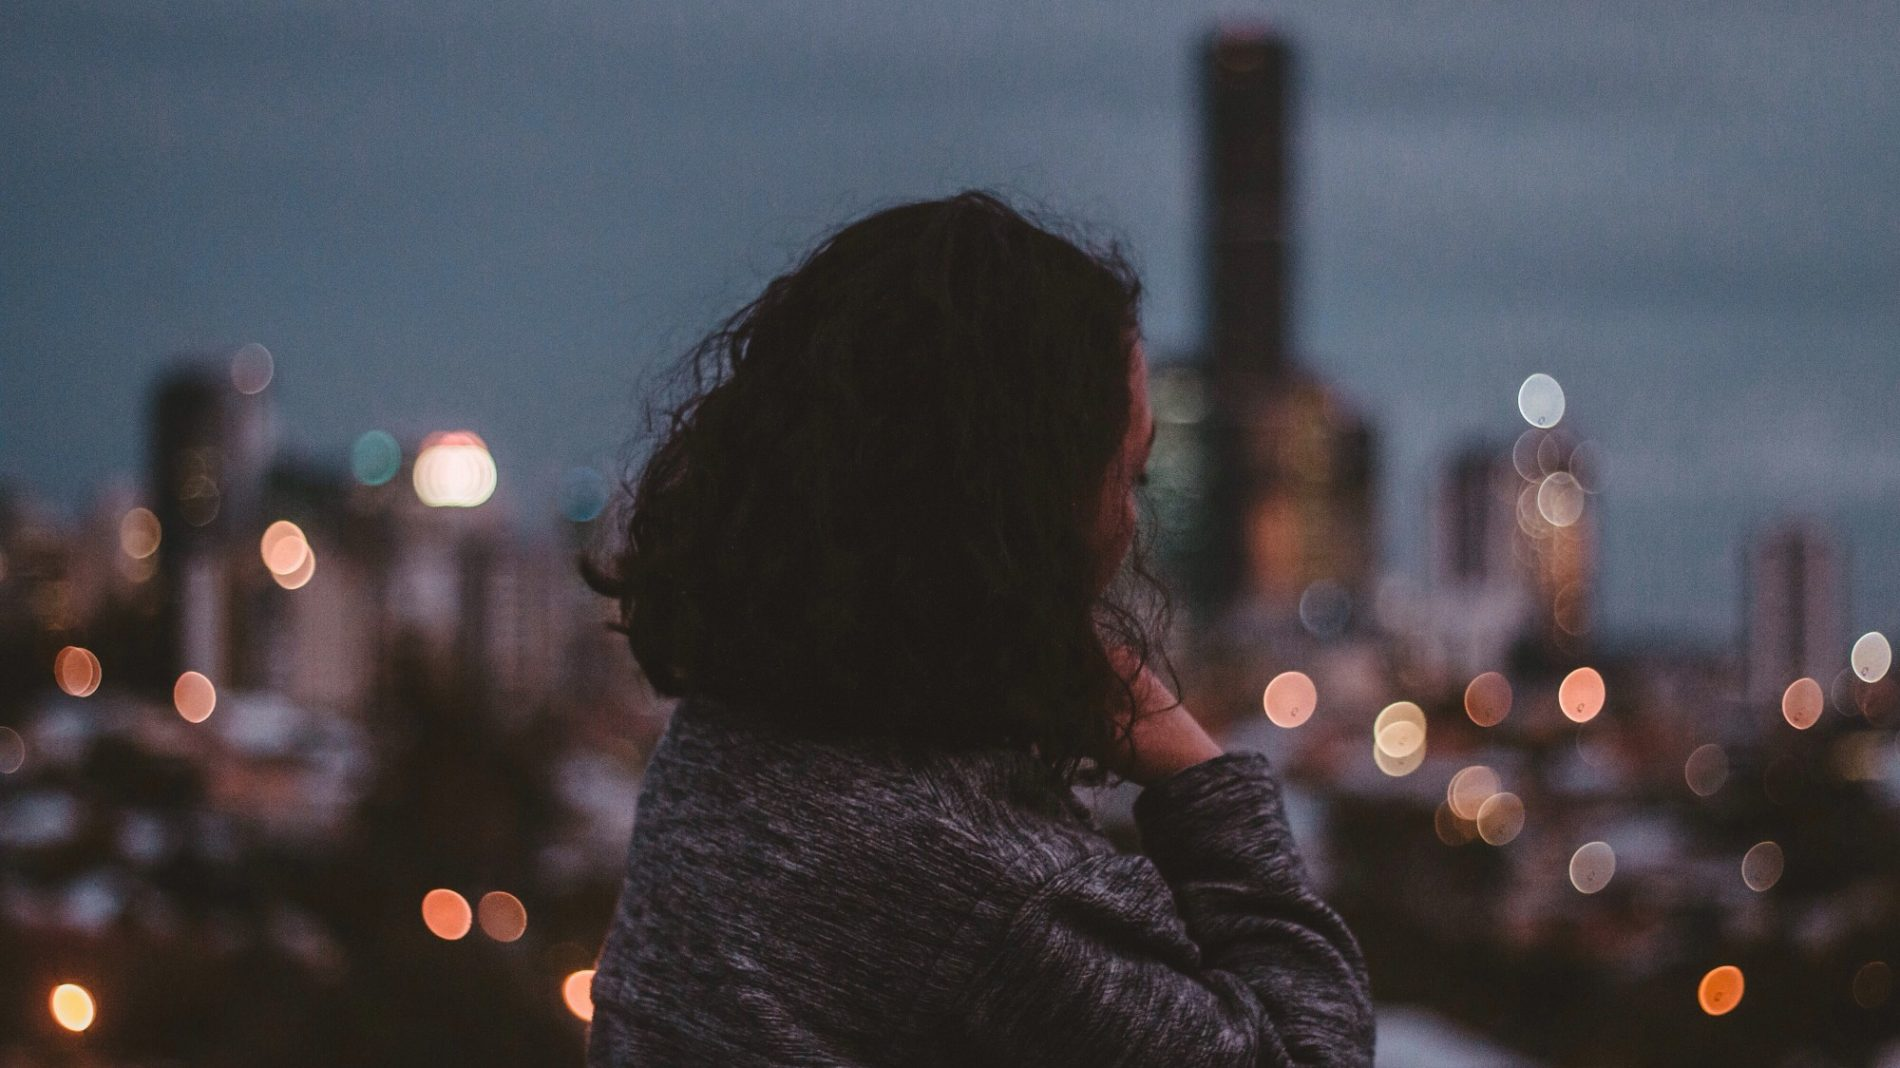 A young woman looking into the distance in front of a city skyline